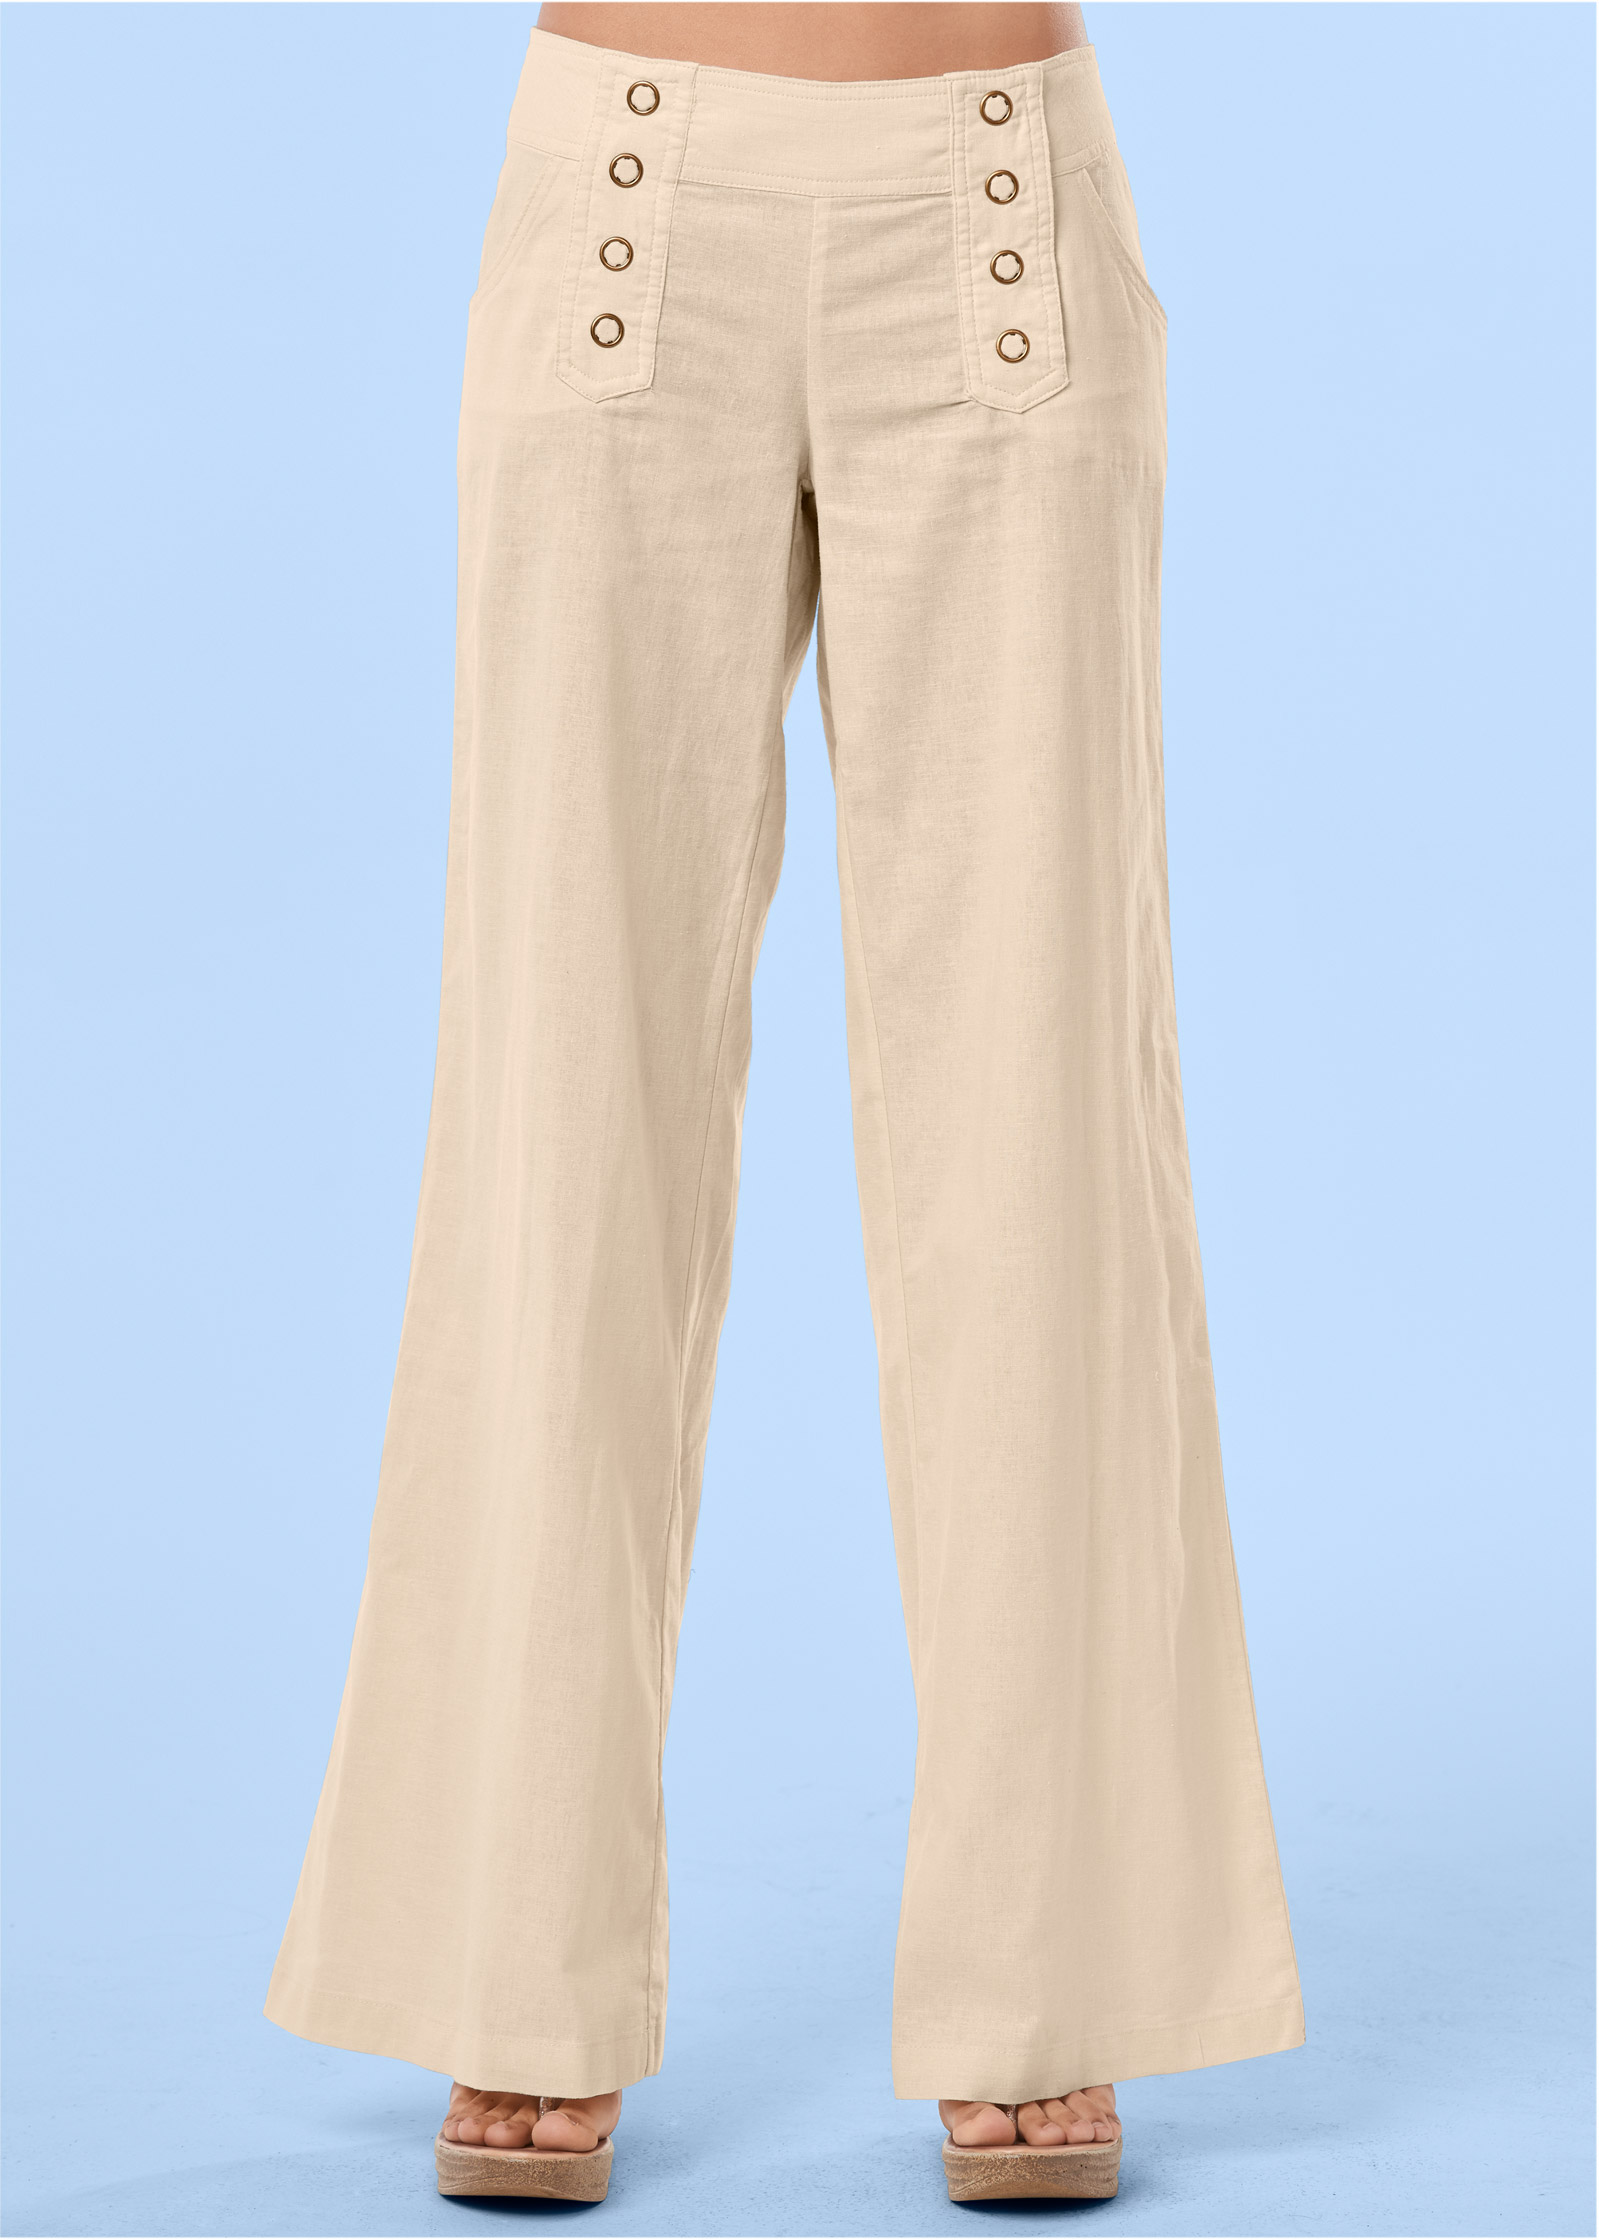 LINEN PANTS in Sand | VENUS